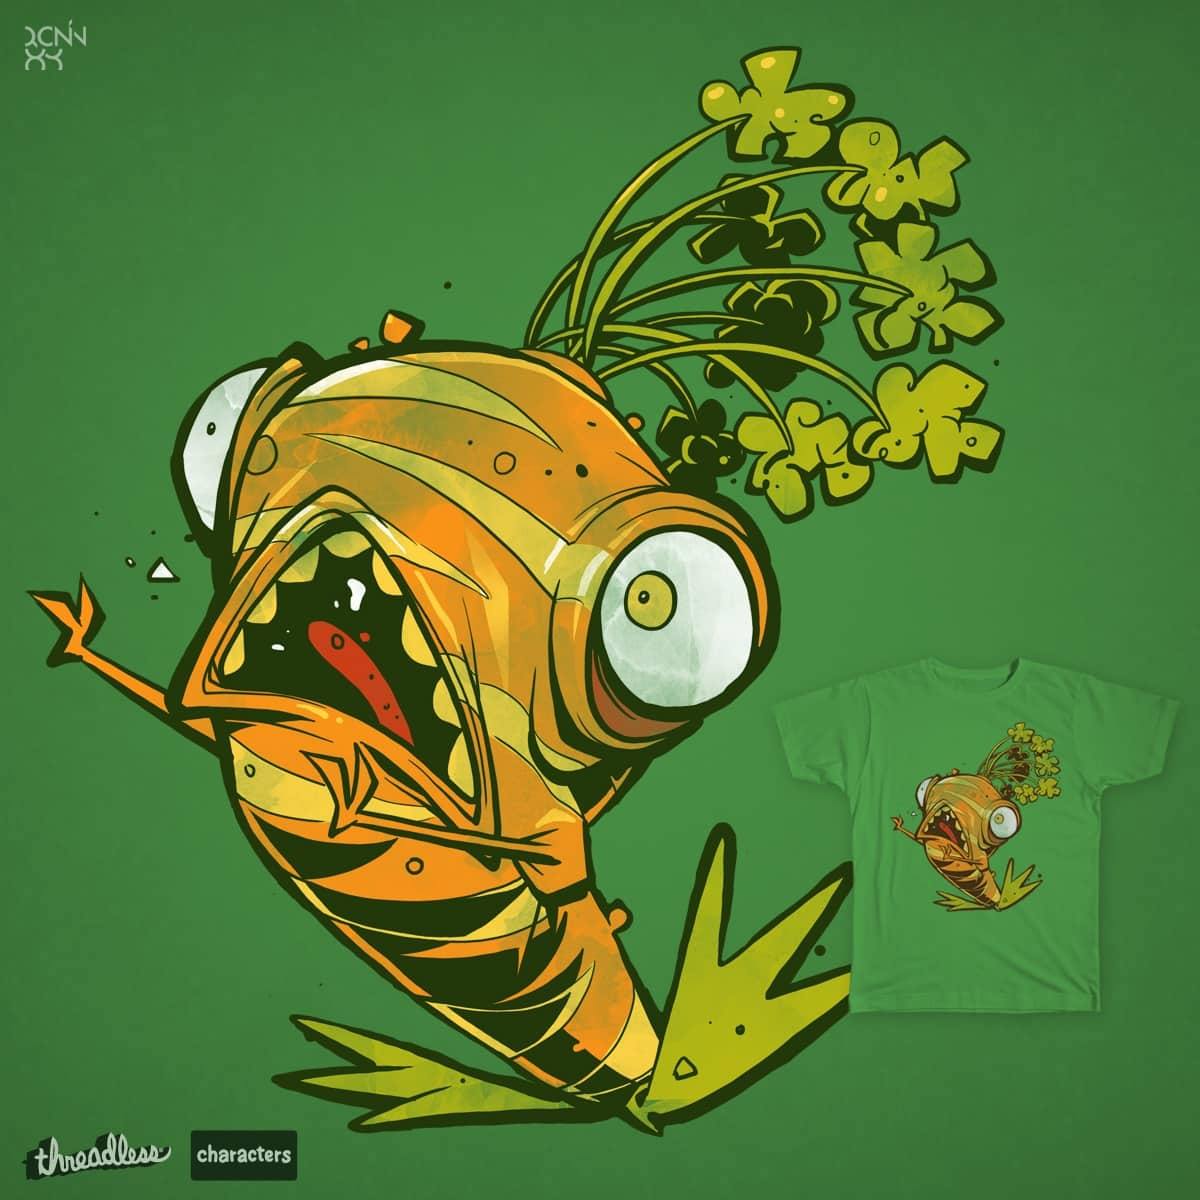 carrot the thief by ronin84 on Threadless